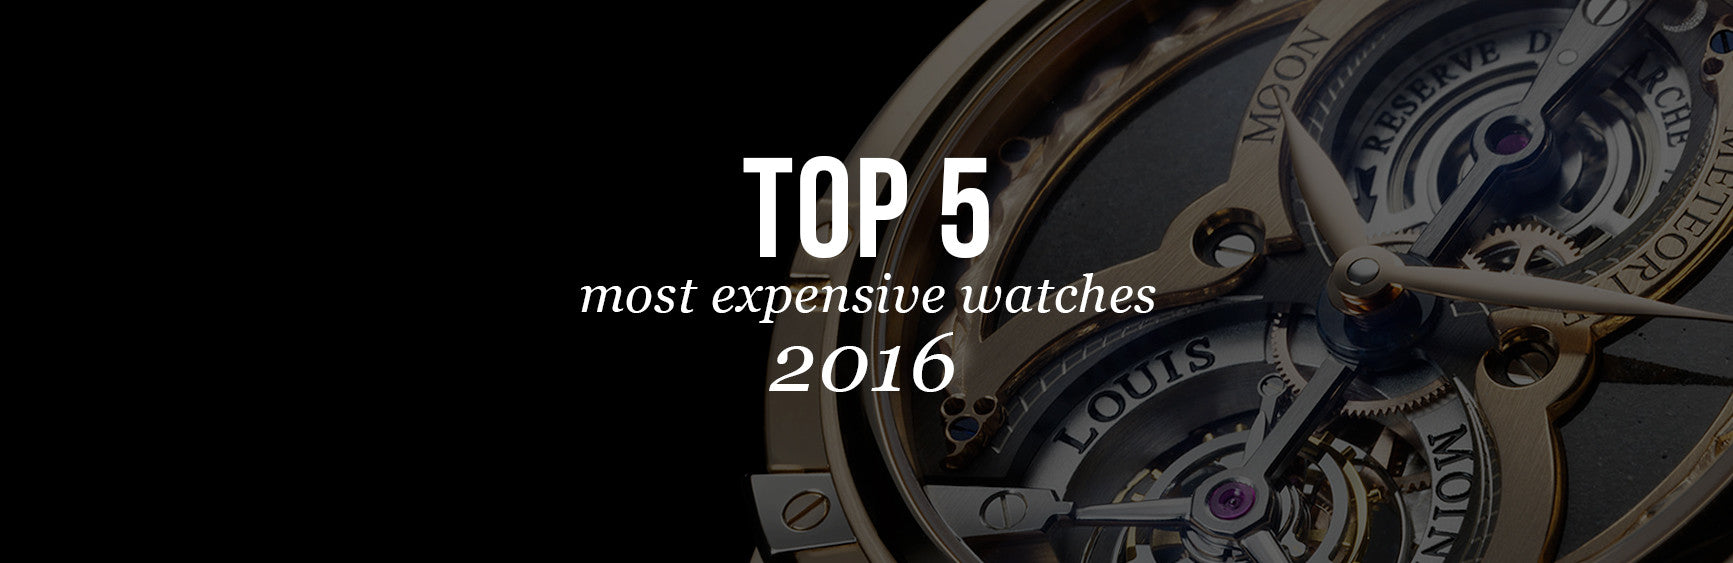 Top 5 Most Expensive Watches in 2016!